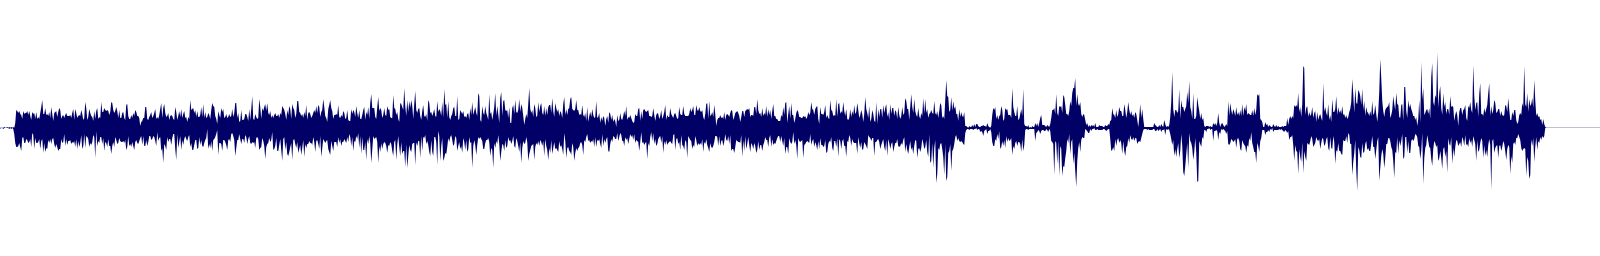 waveform of track #141795